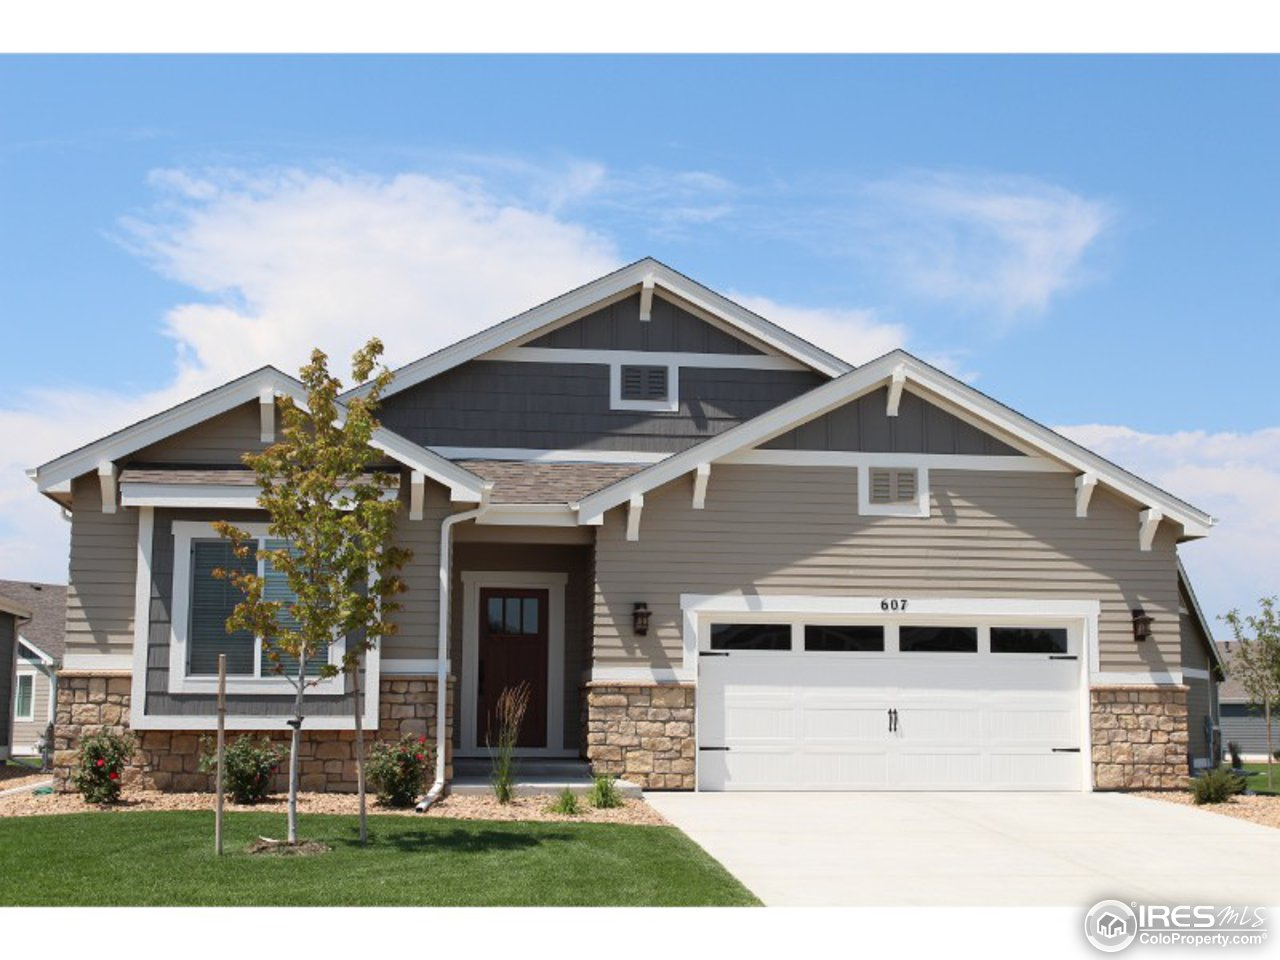 607 N 78th Ave Loveland Home Listings - Team Cook Real Estate